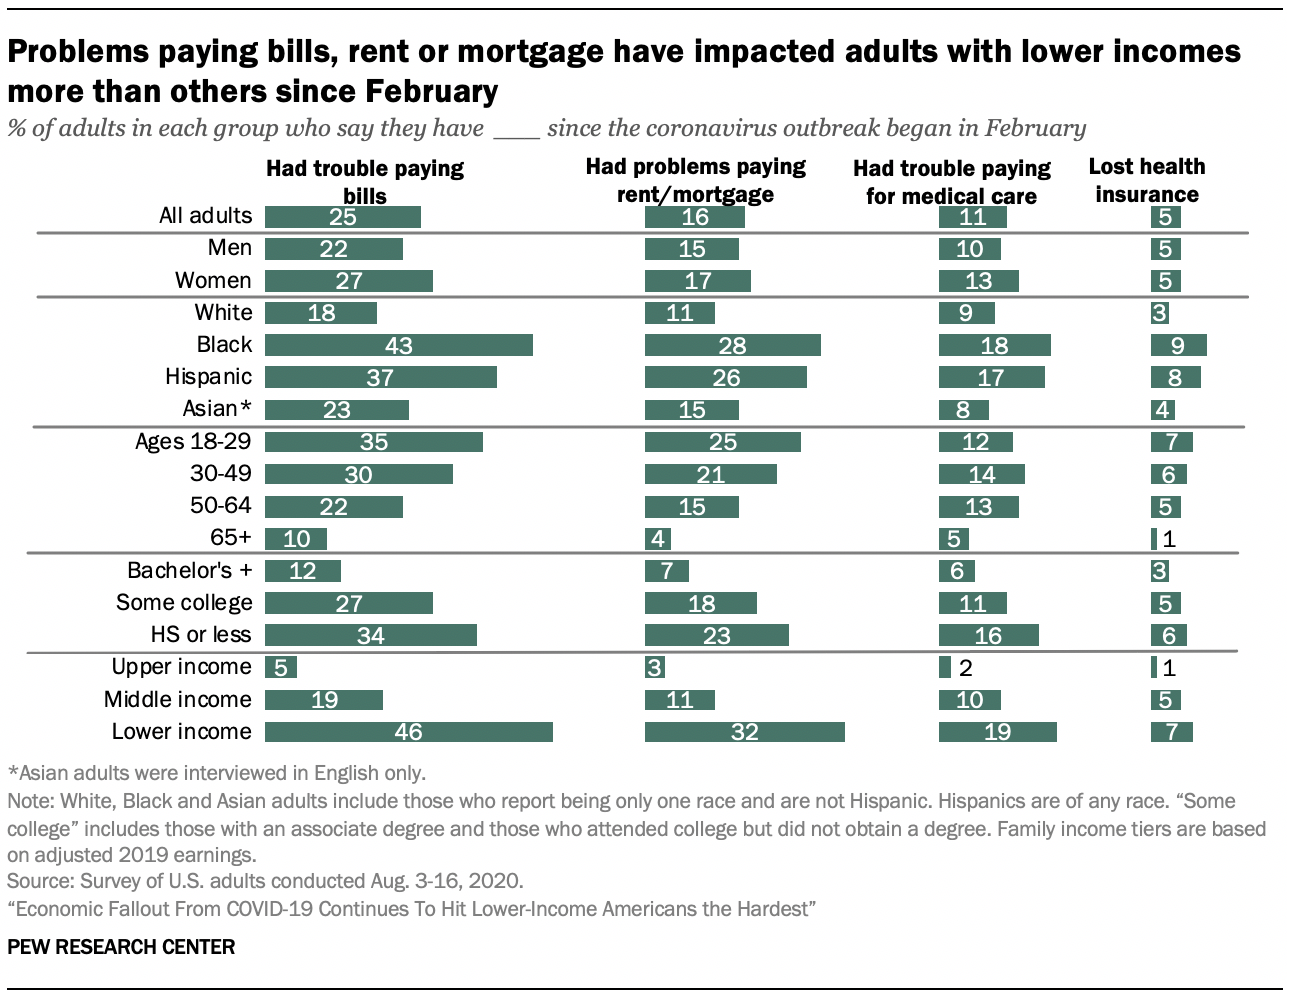 Problems paying bills, rent or mortgage have impacted adults with lower incomes more than others since February